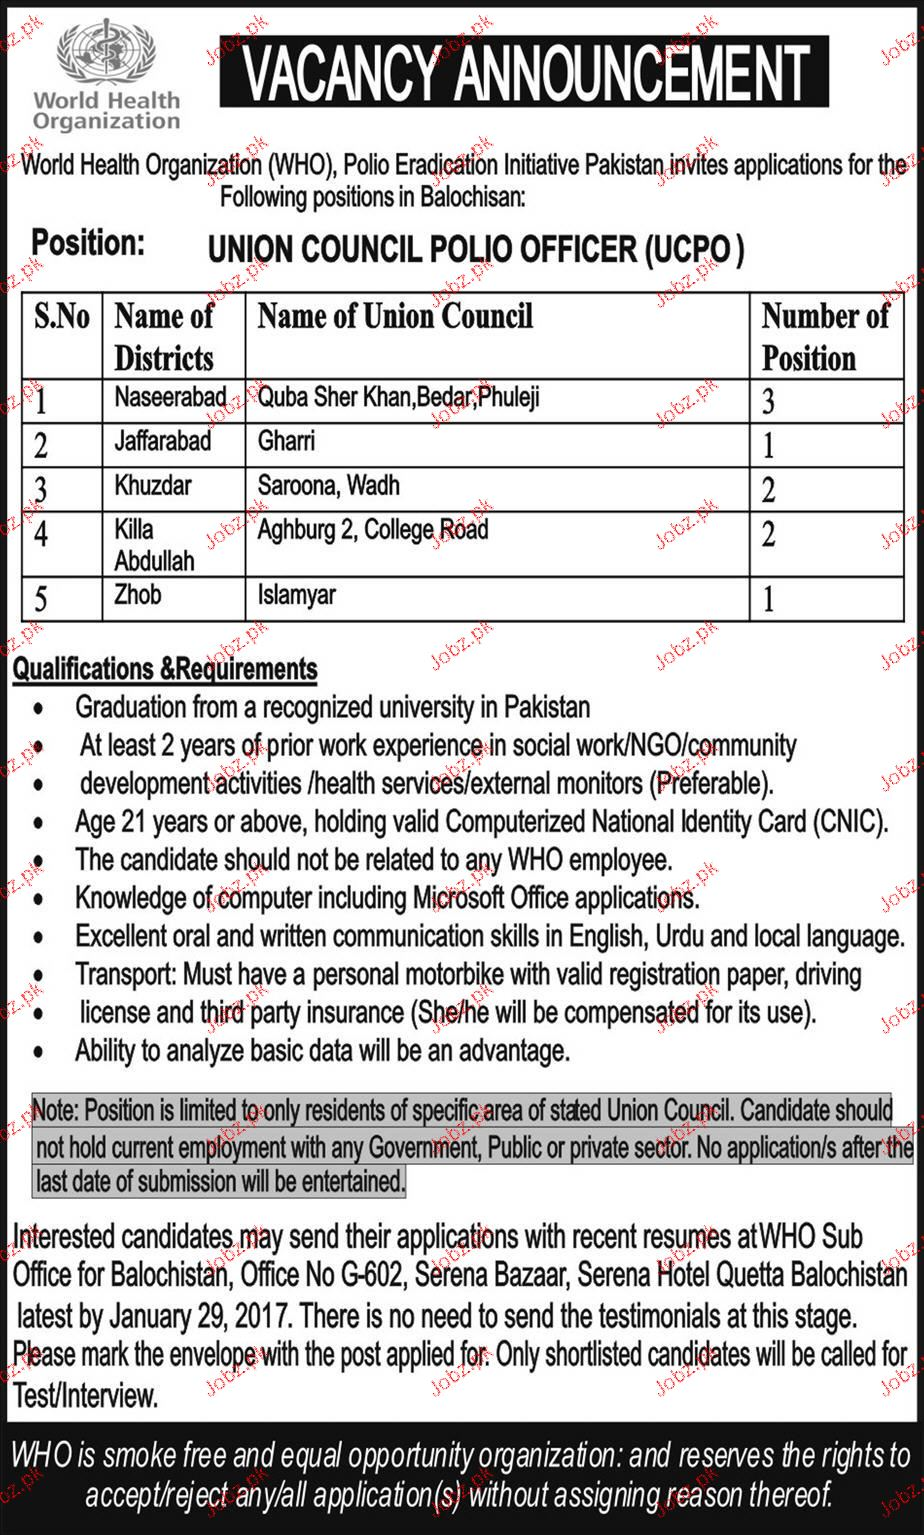 Union Council Polio Officers Job in WHO 2019 Job Advertisement Pakistan